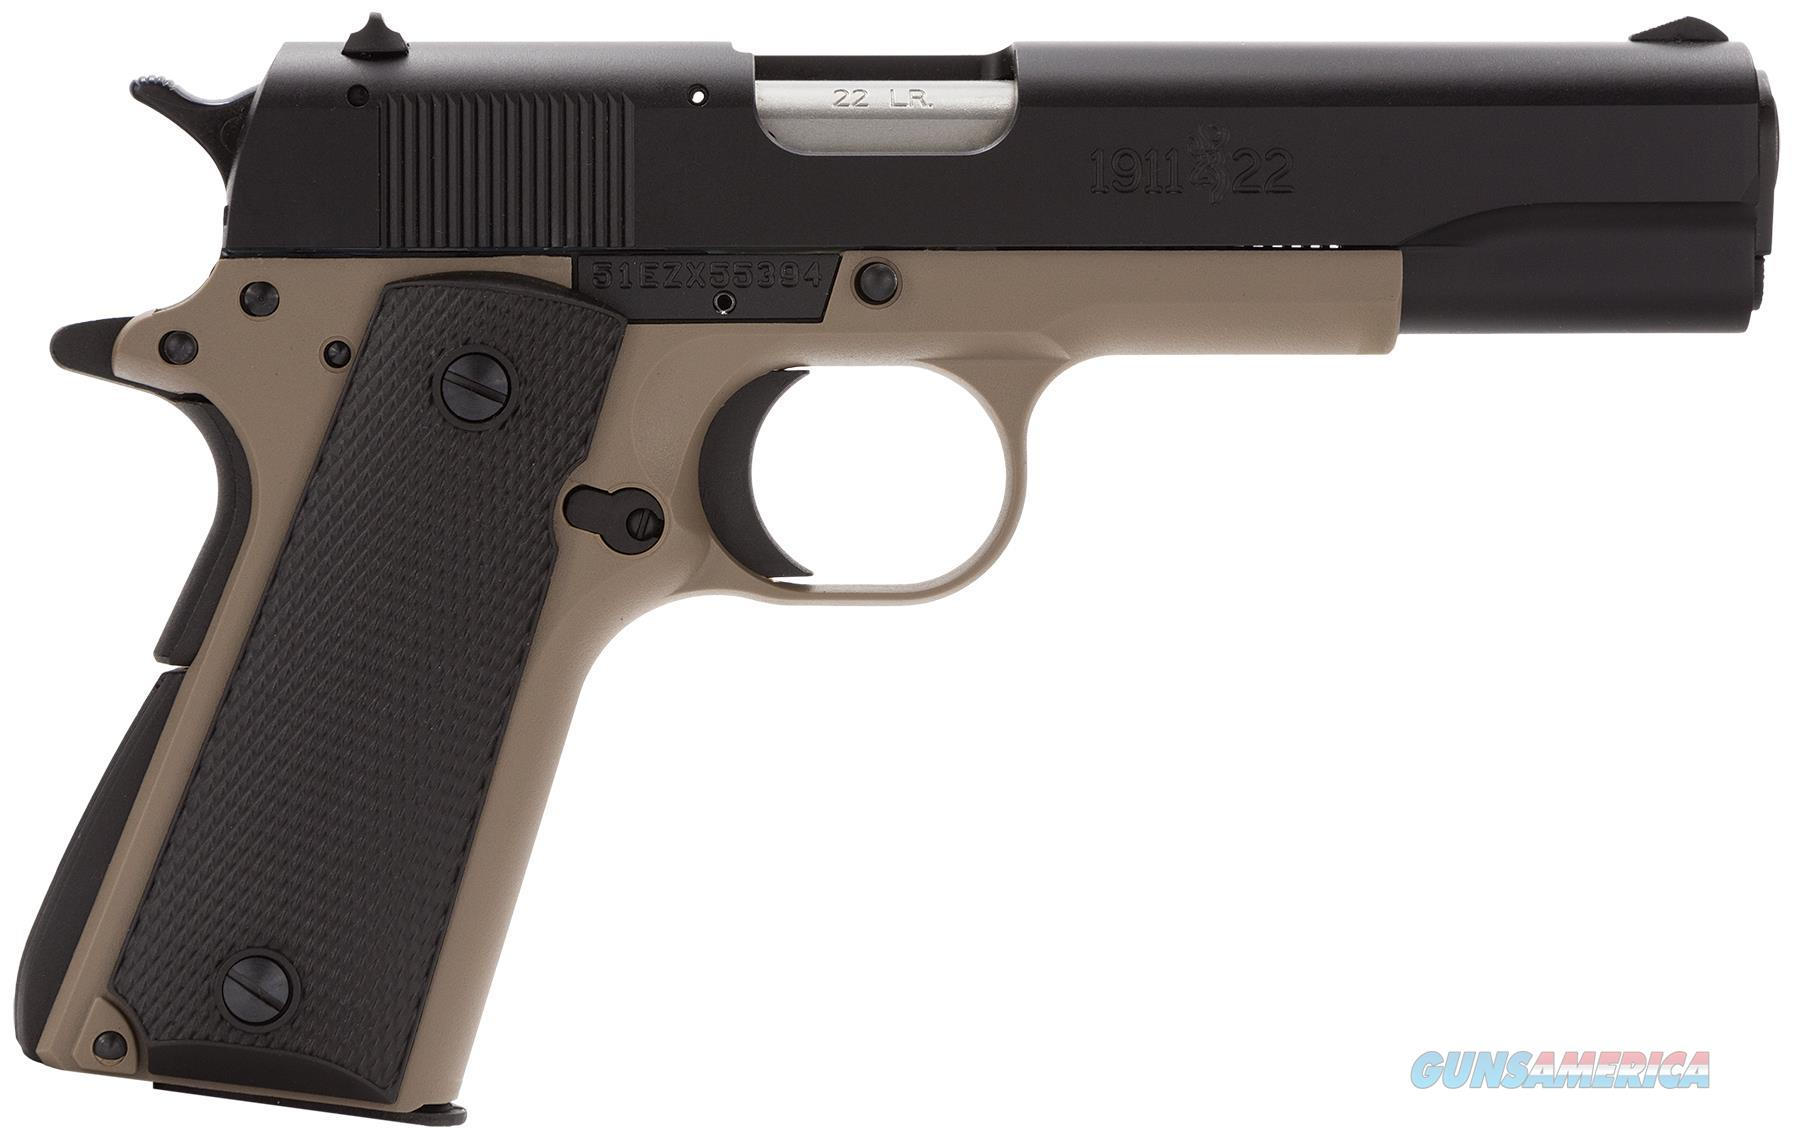 BROWNING 1911-22 A1 22LR 4.25 051808490  Guns > Pistols > Browning Pistols > Other Autos